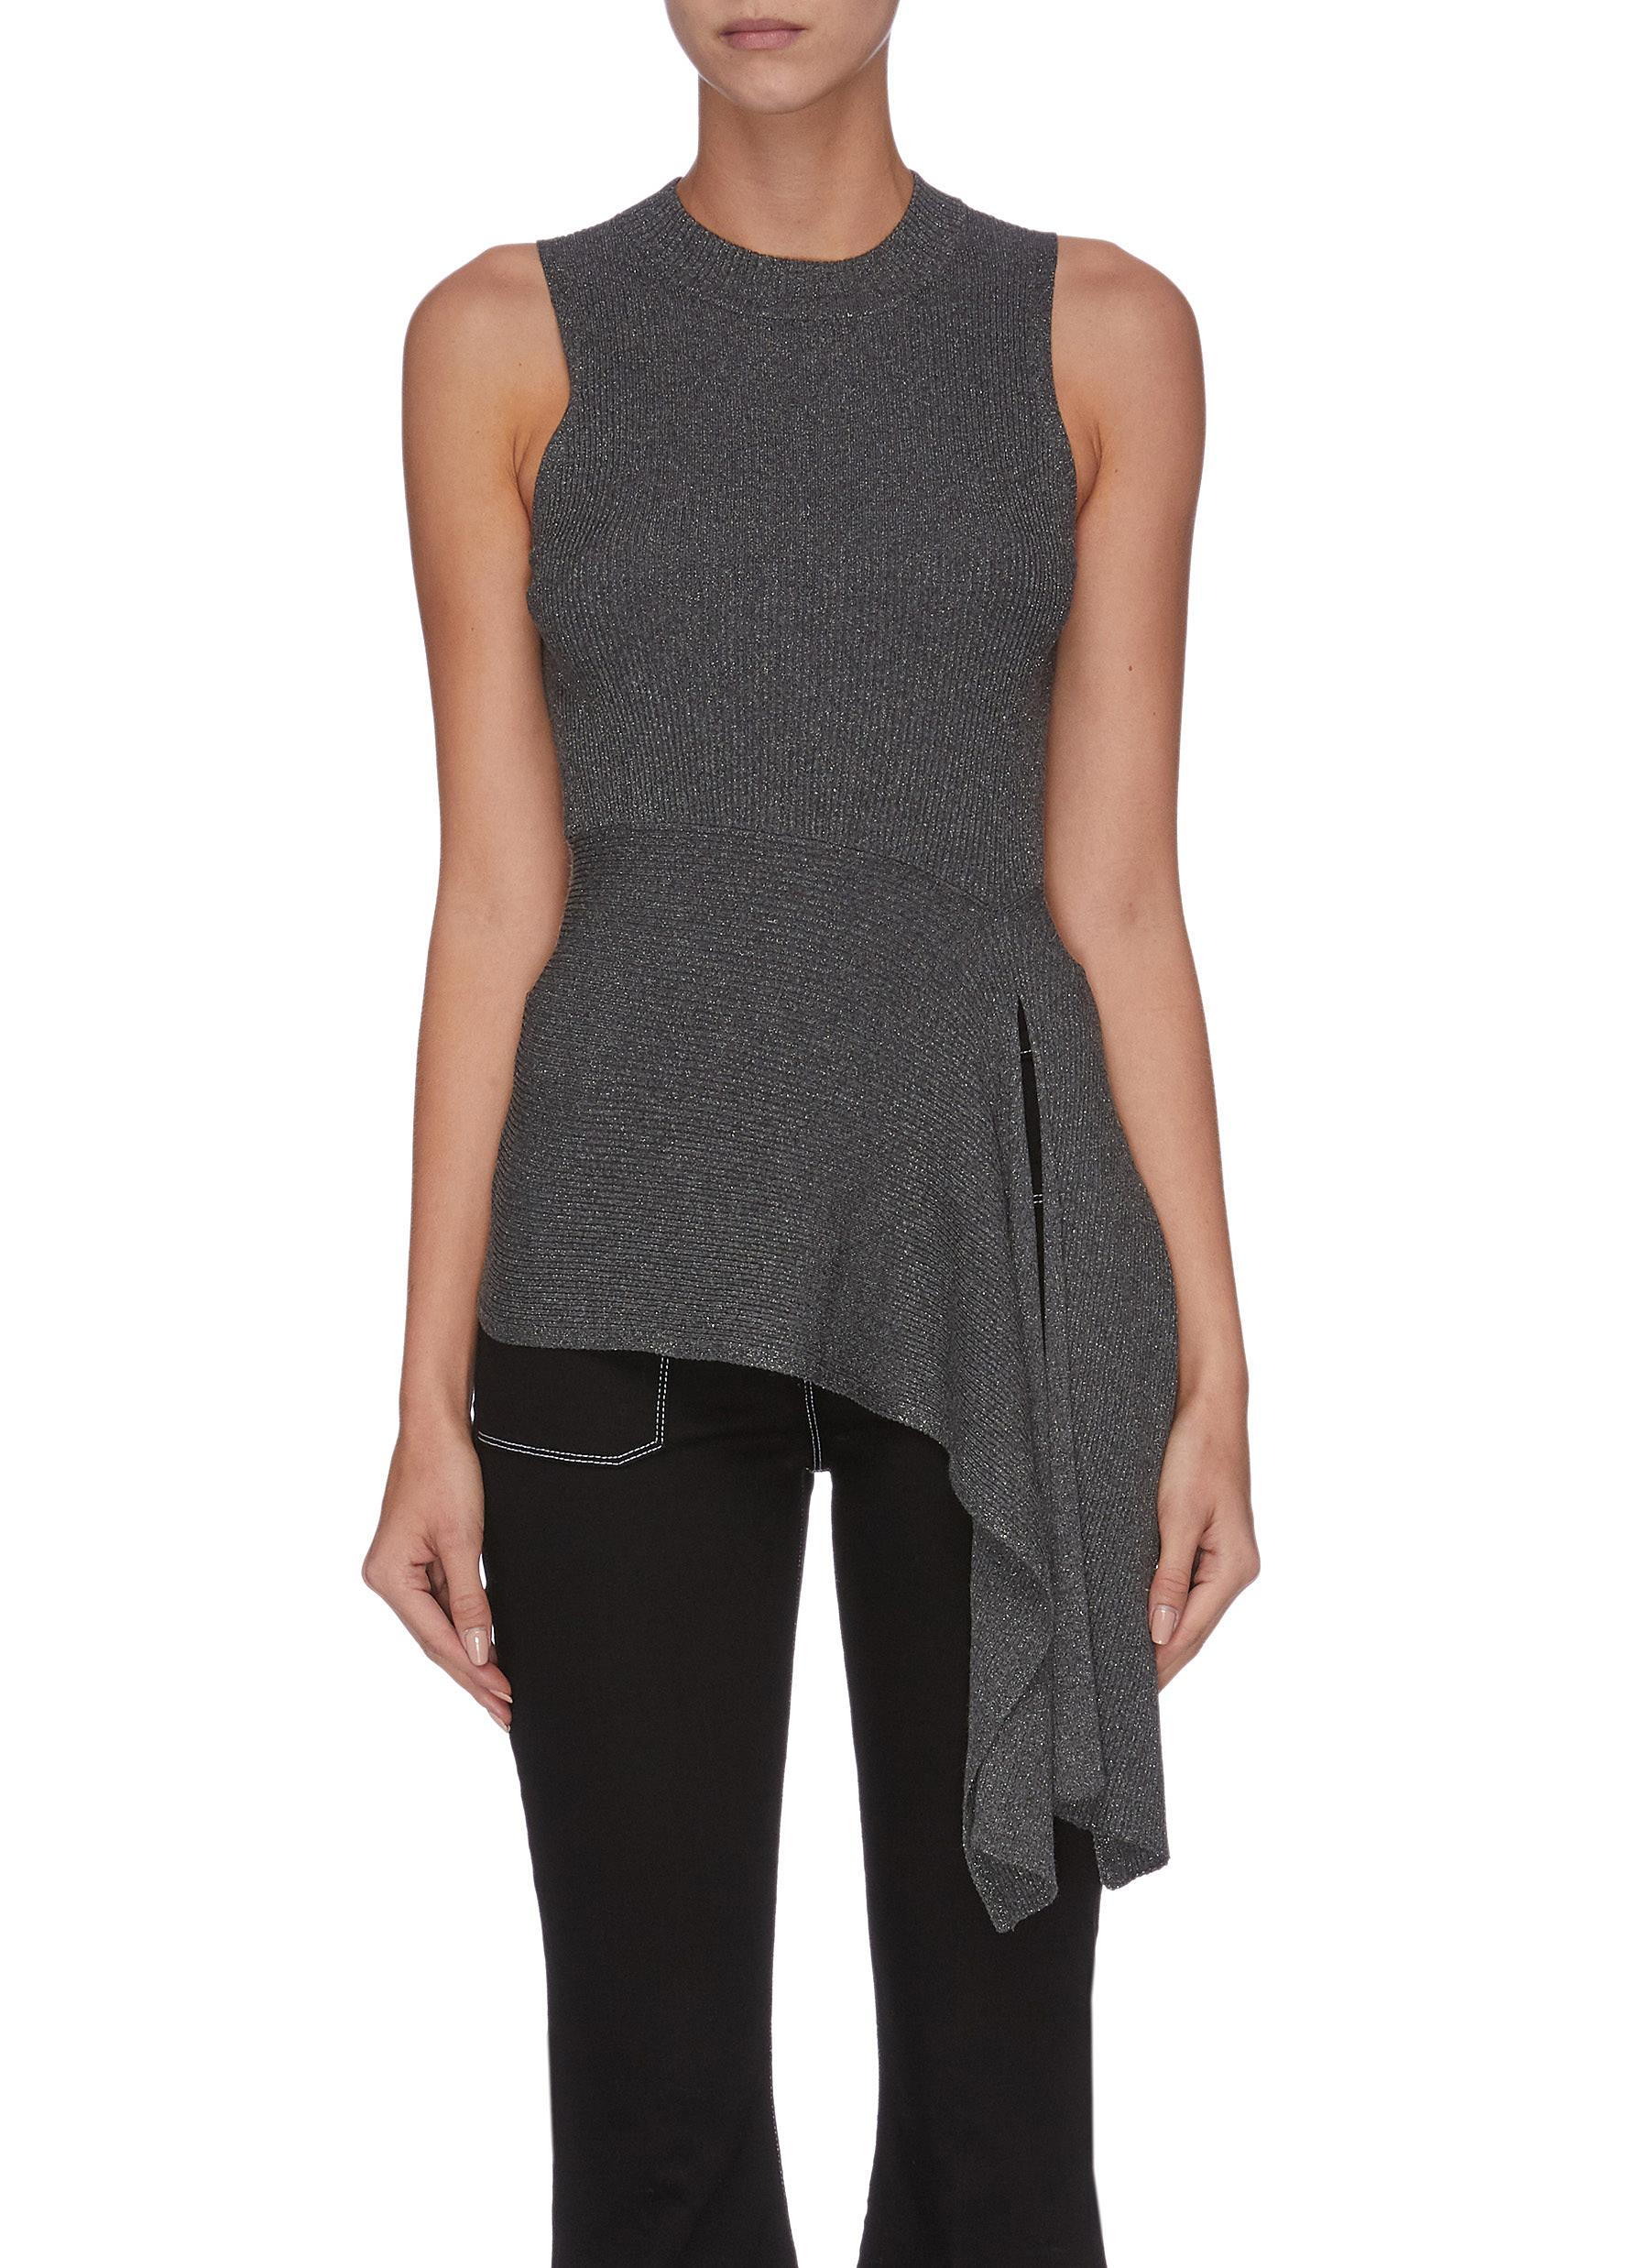 Lurex' asymmetric drape sleeveless knit top - 3.1 PHILLIP LIM - Modalova